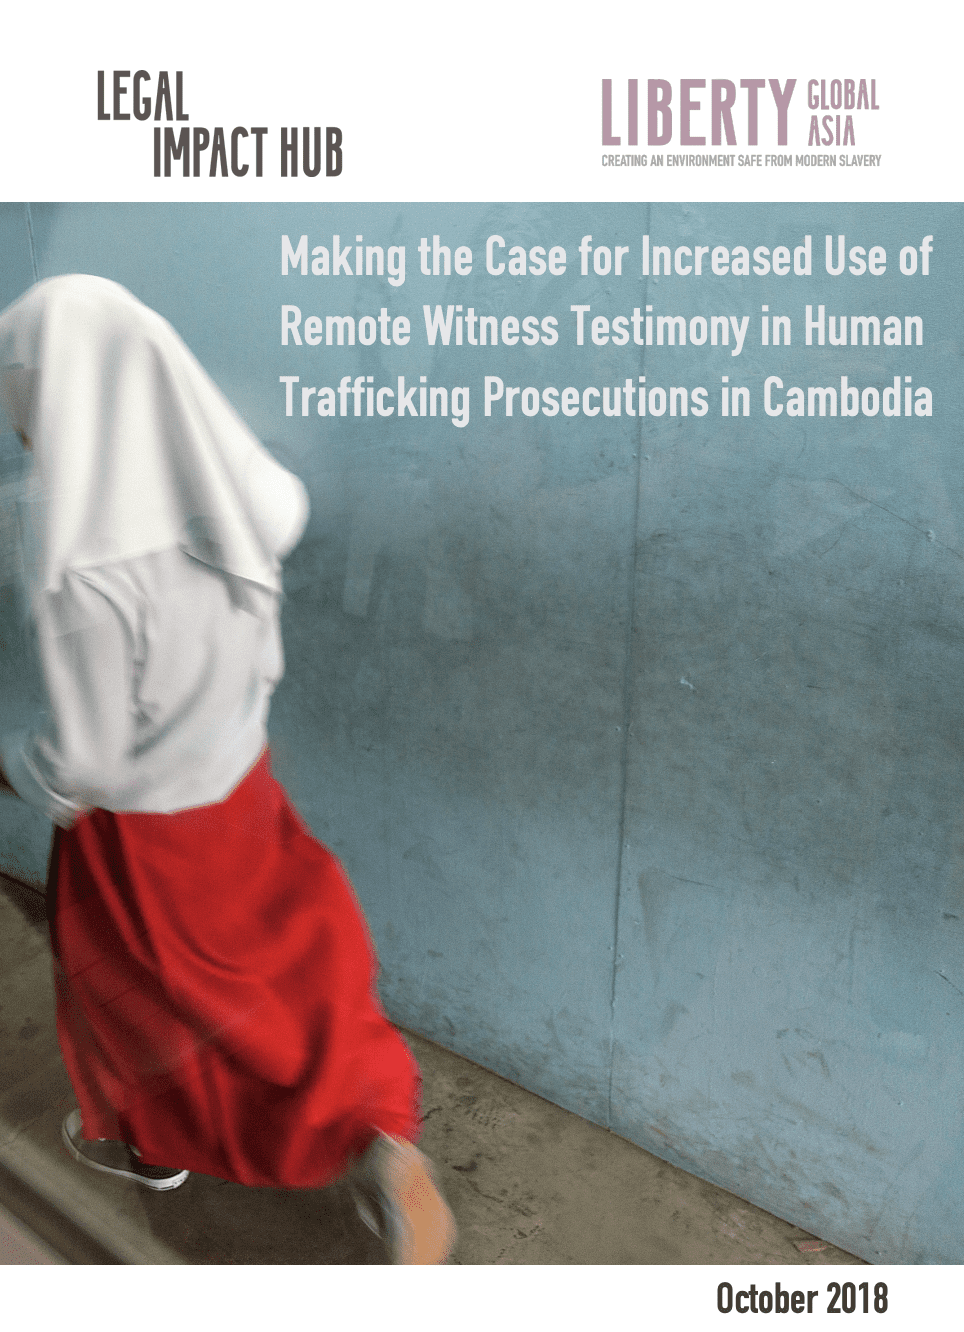 Making the Case for Increased Use of Remote Witness Testimony in Human Trafficking Prosecutions in Cambodia